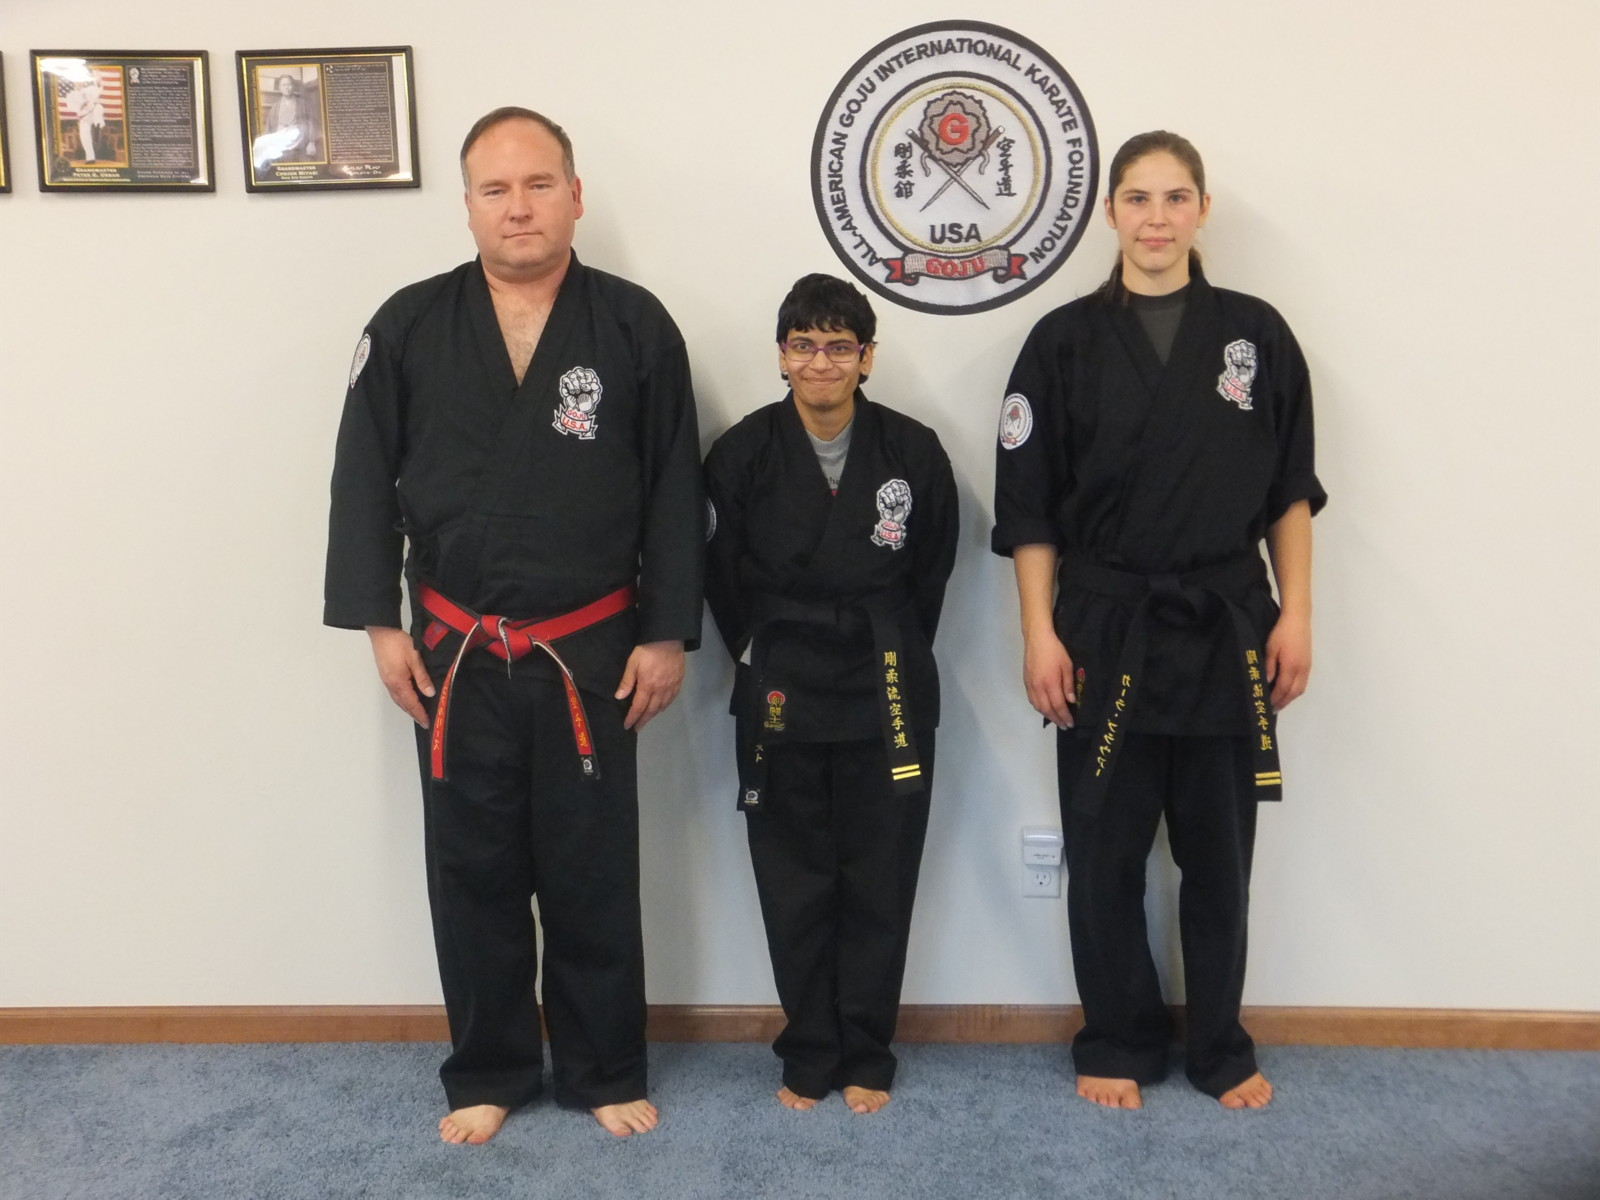 black belt test essays Black belt sample test home  forums  old forums  general  black belt sample test this topic contains 54 replies, has 45 voices, and was last updated by ken 12 years, 7 months ago.